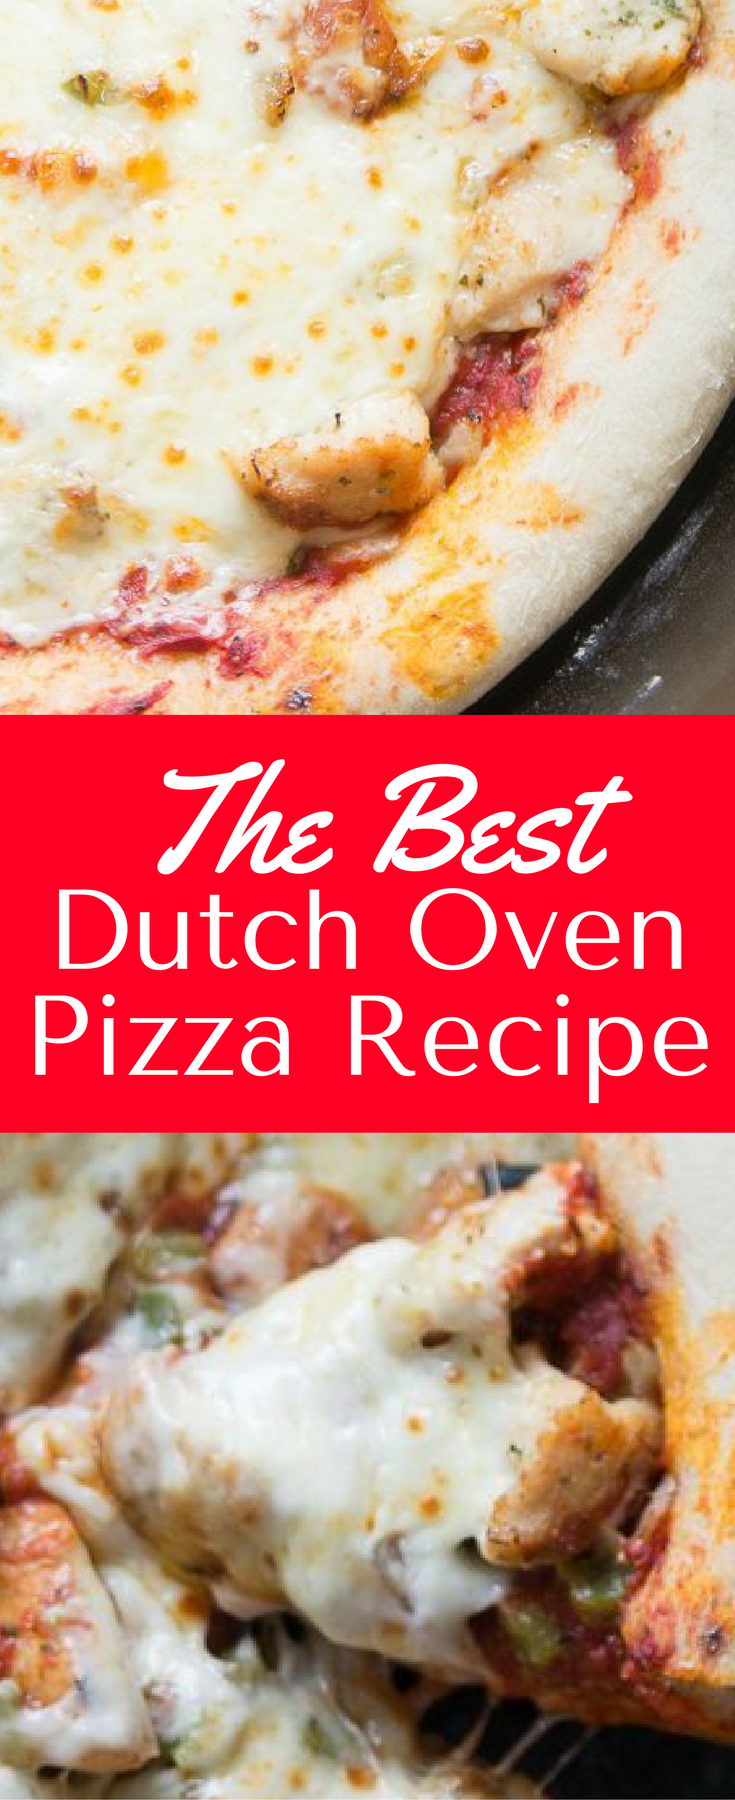 Dutch Oven Pizza / Dutch Oven Pizza Recipe / Outdoor Pizza / Camping Pizza / Pizza Recipe / Pizza Dough / Camping / Dutch Oven Cooking